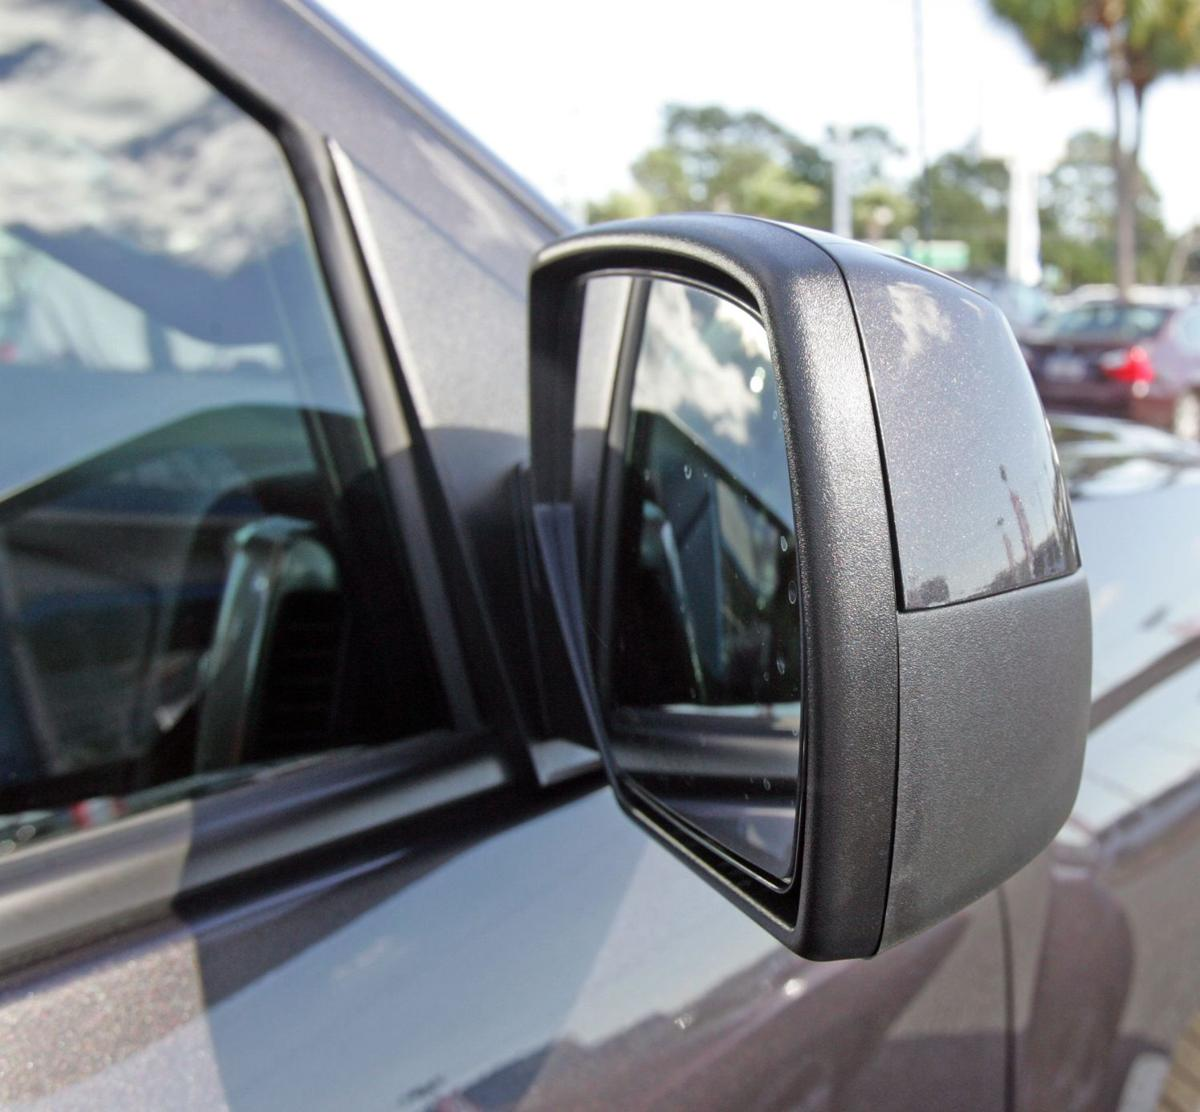 Safety, costs steer car buyers, study finds